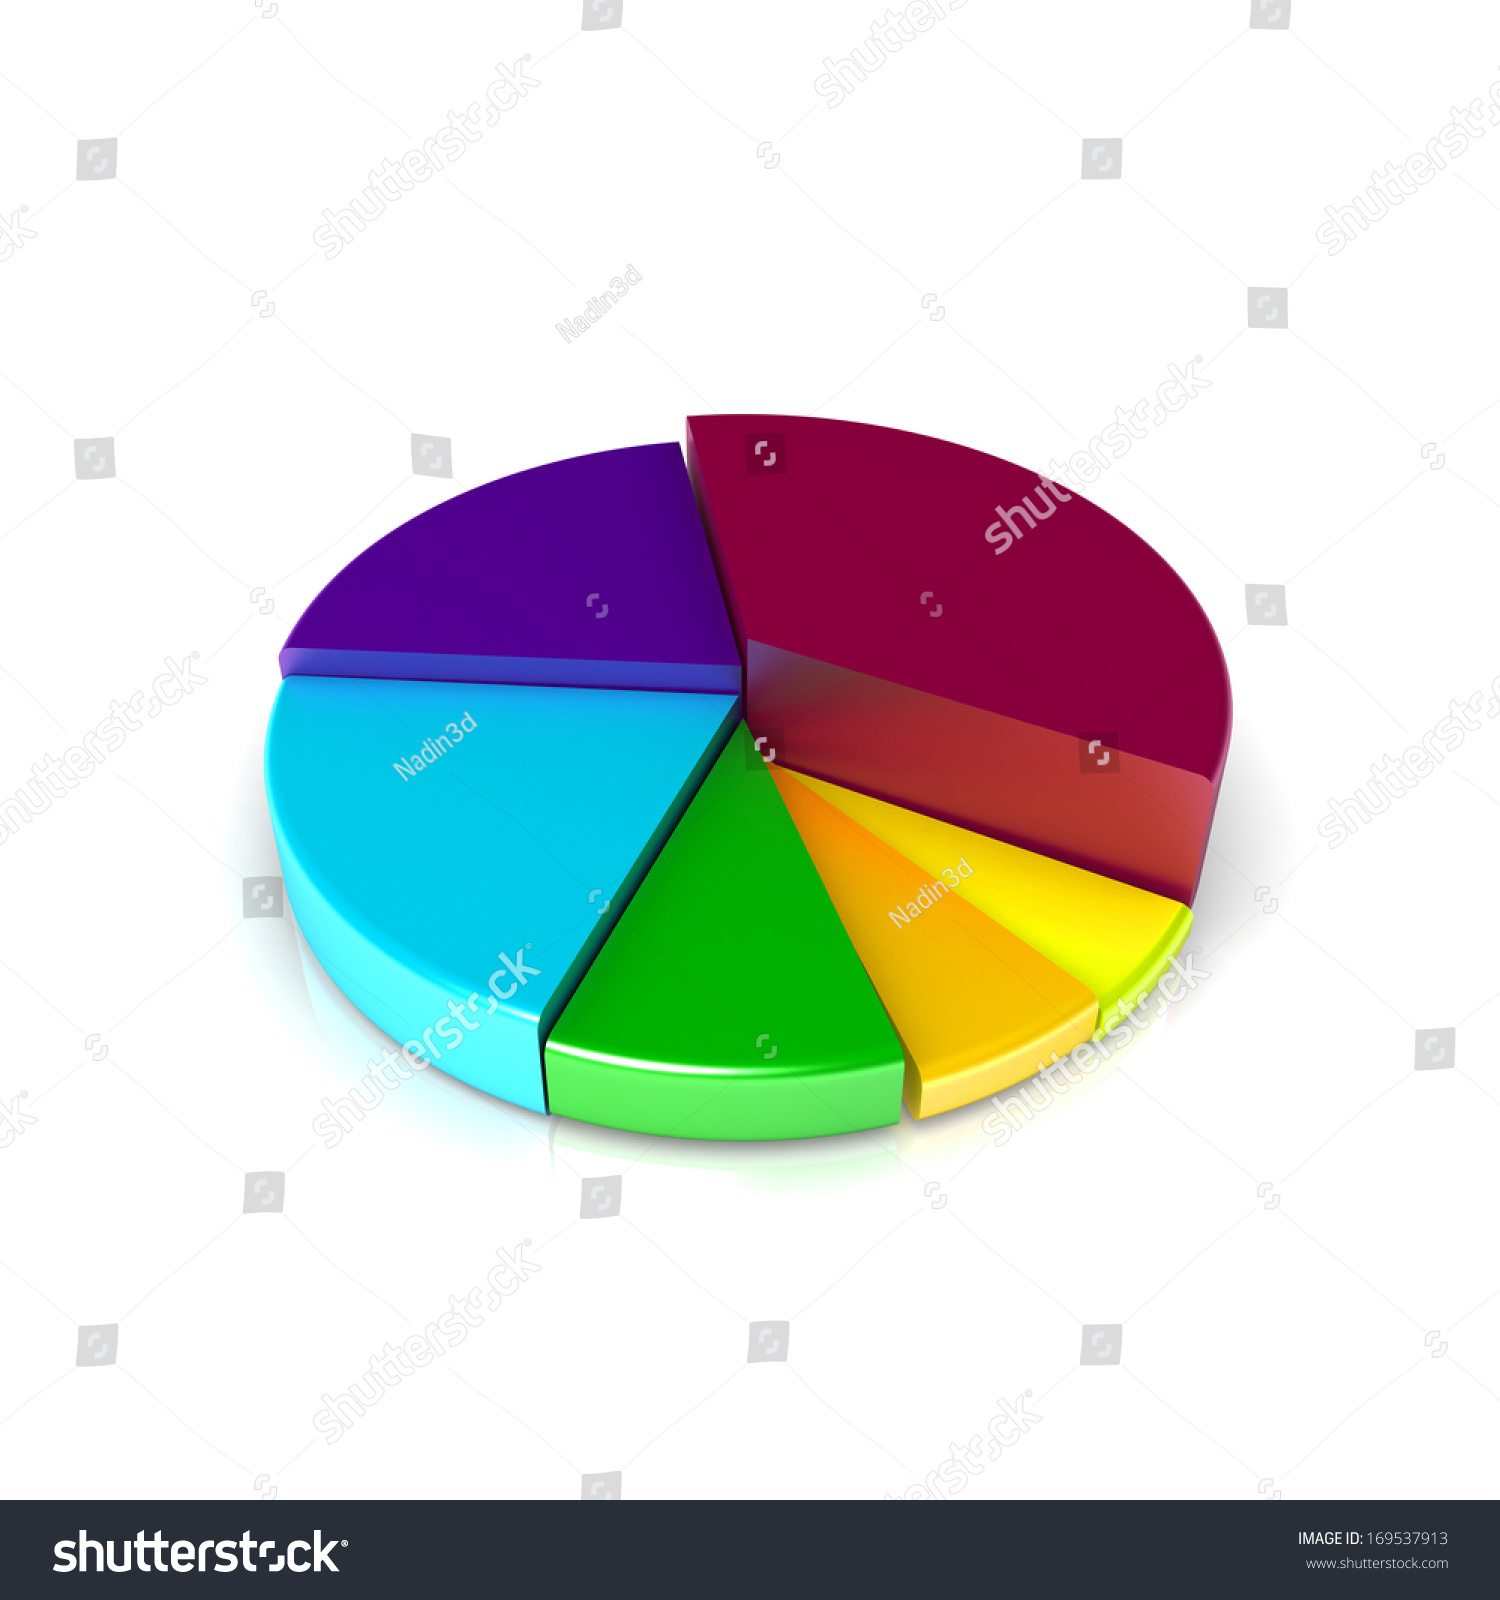 Pie chart or pie graph gallery free any chart examples pie chart or pie graph image collections free any chart examples pie chart or pie graph nvjuhfo Image collections